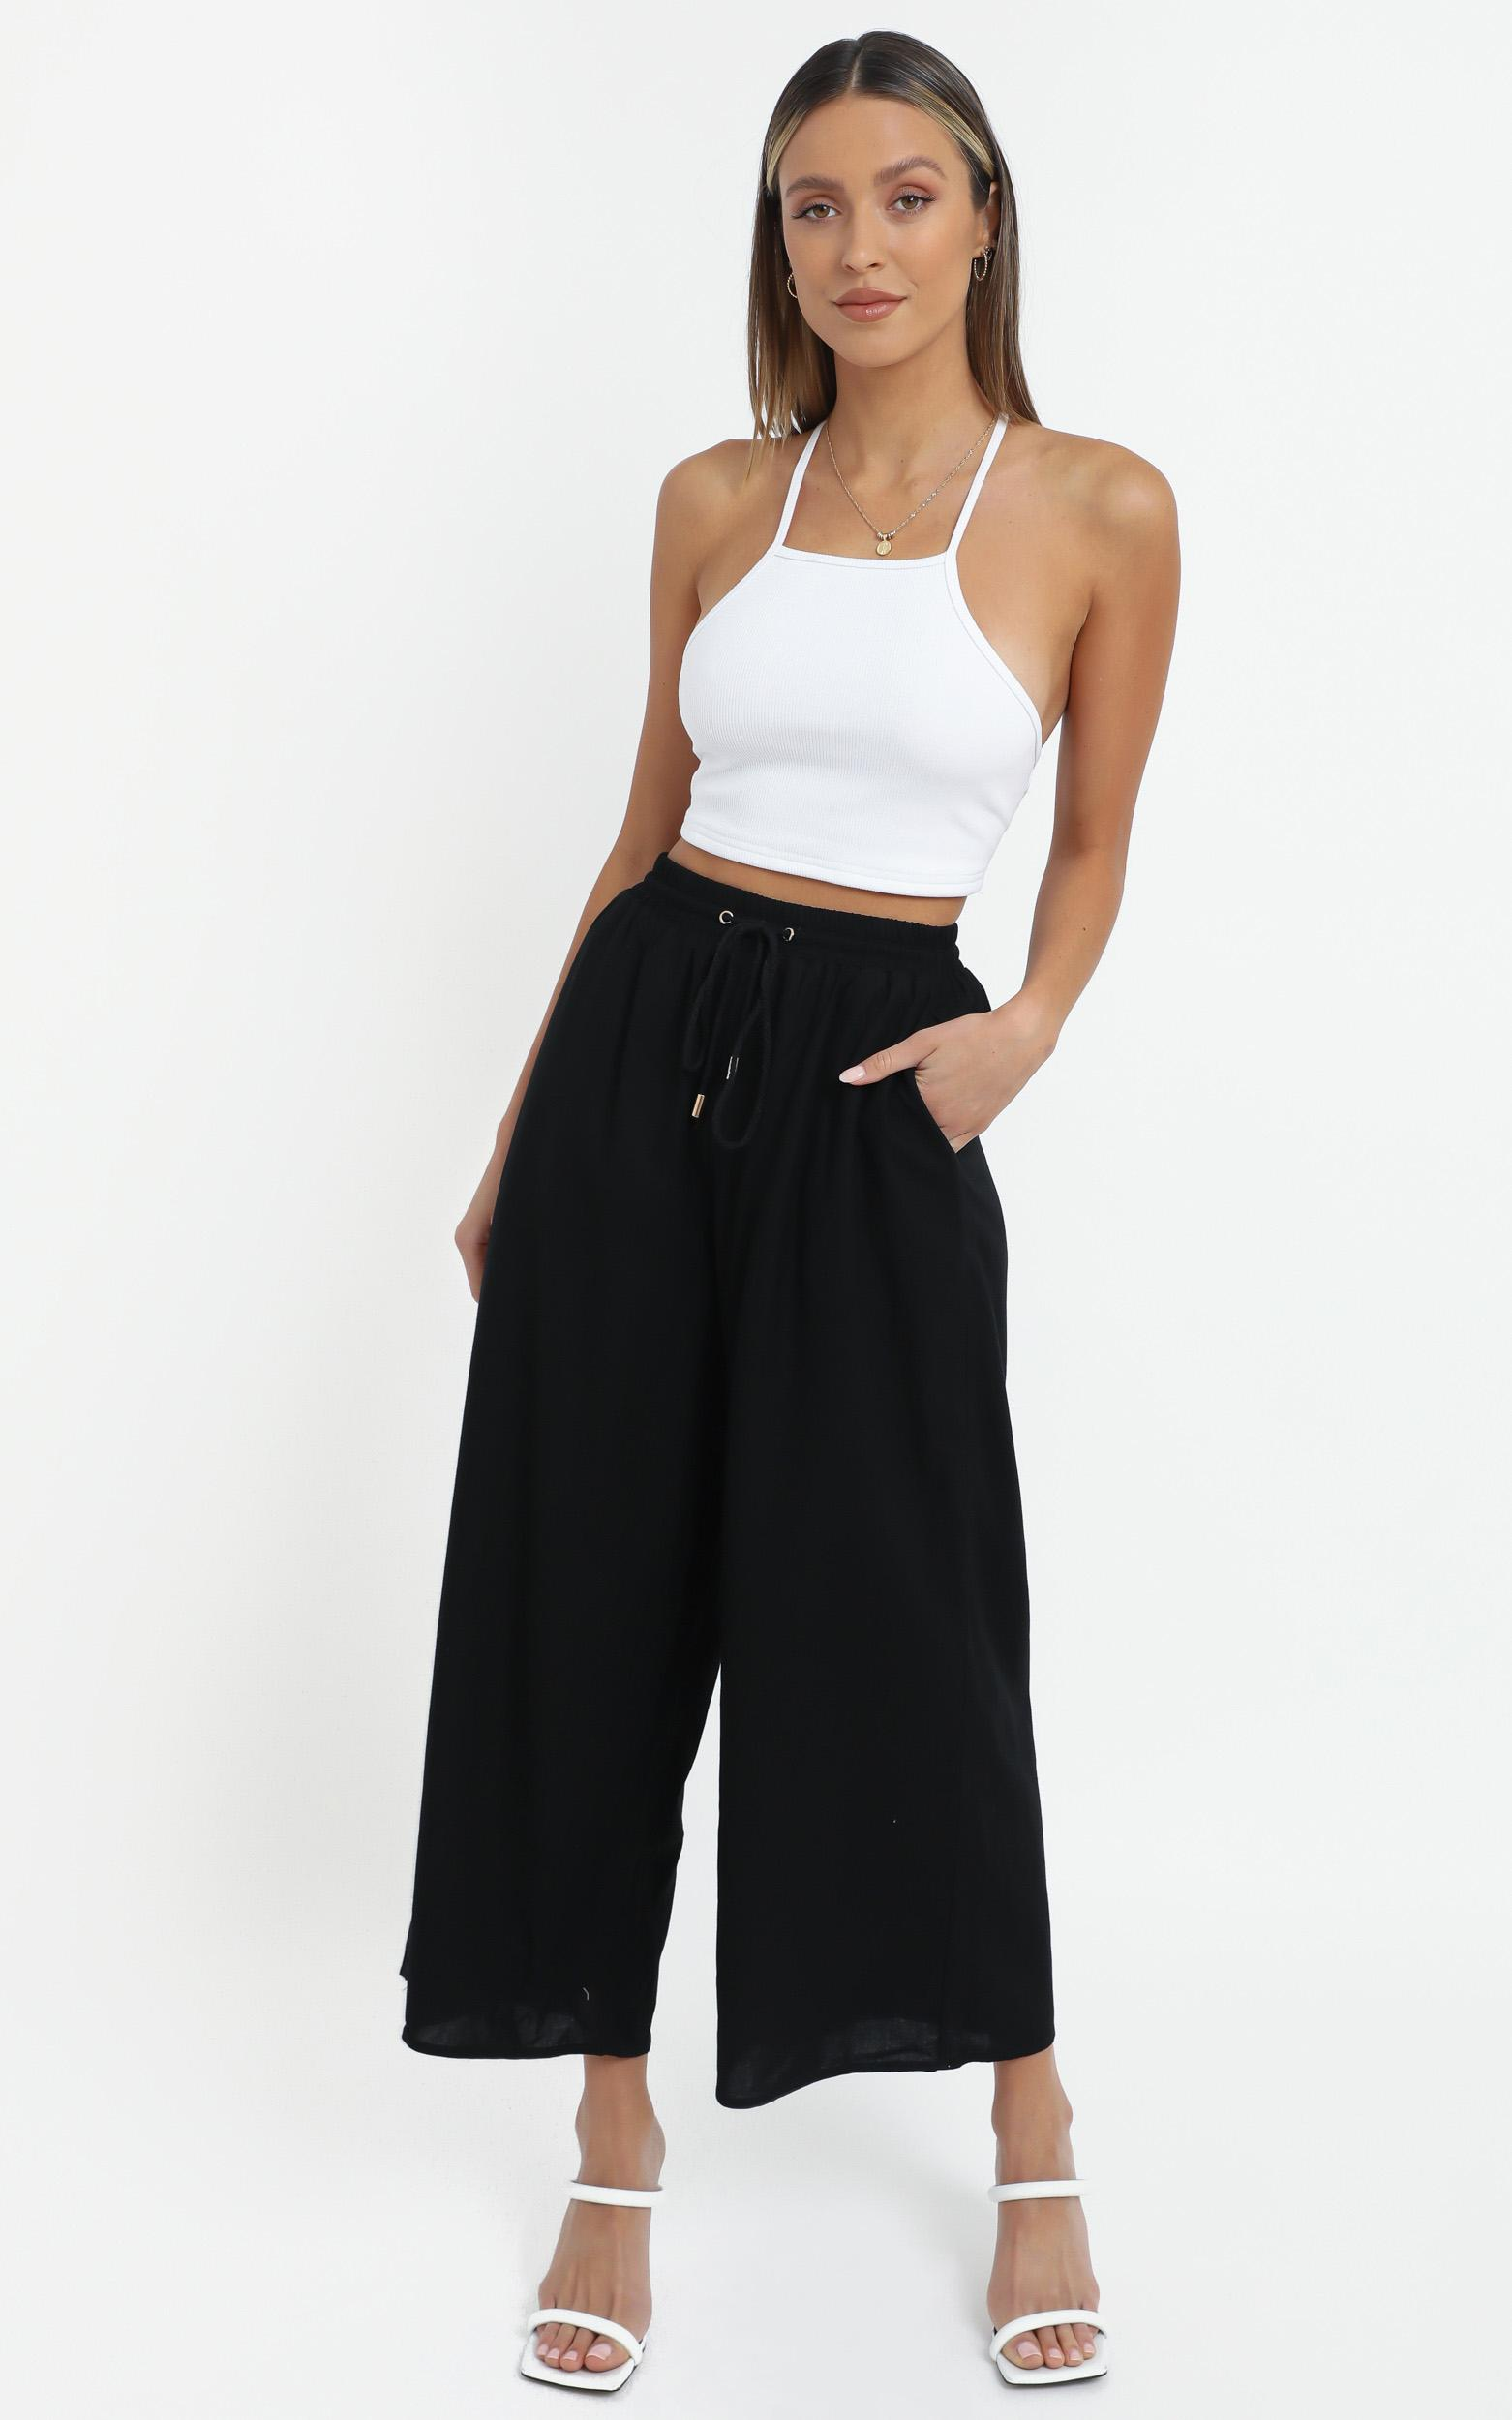 Chenoa Pants in Black - 14 (XL), Black, hi-res image number null